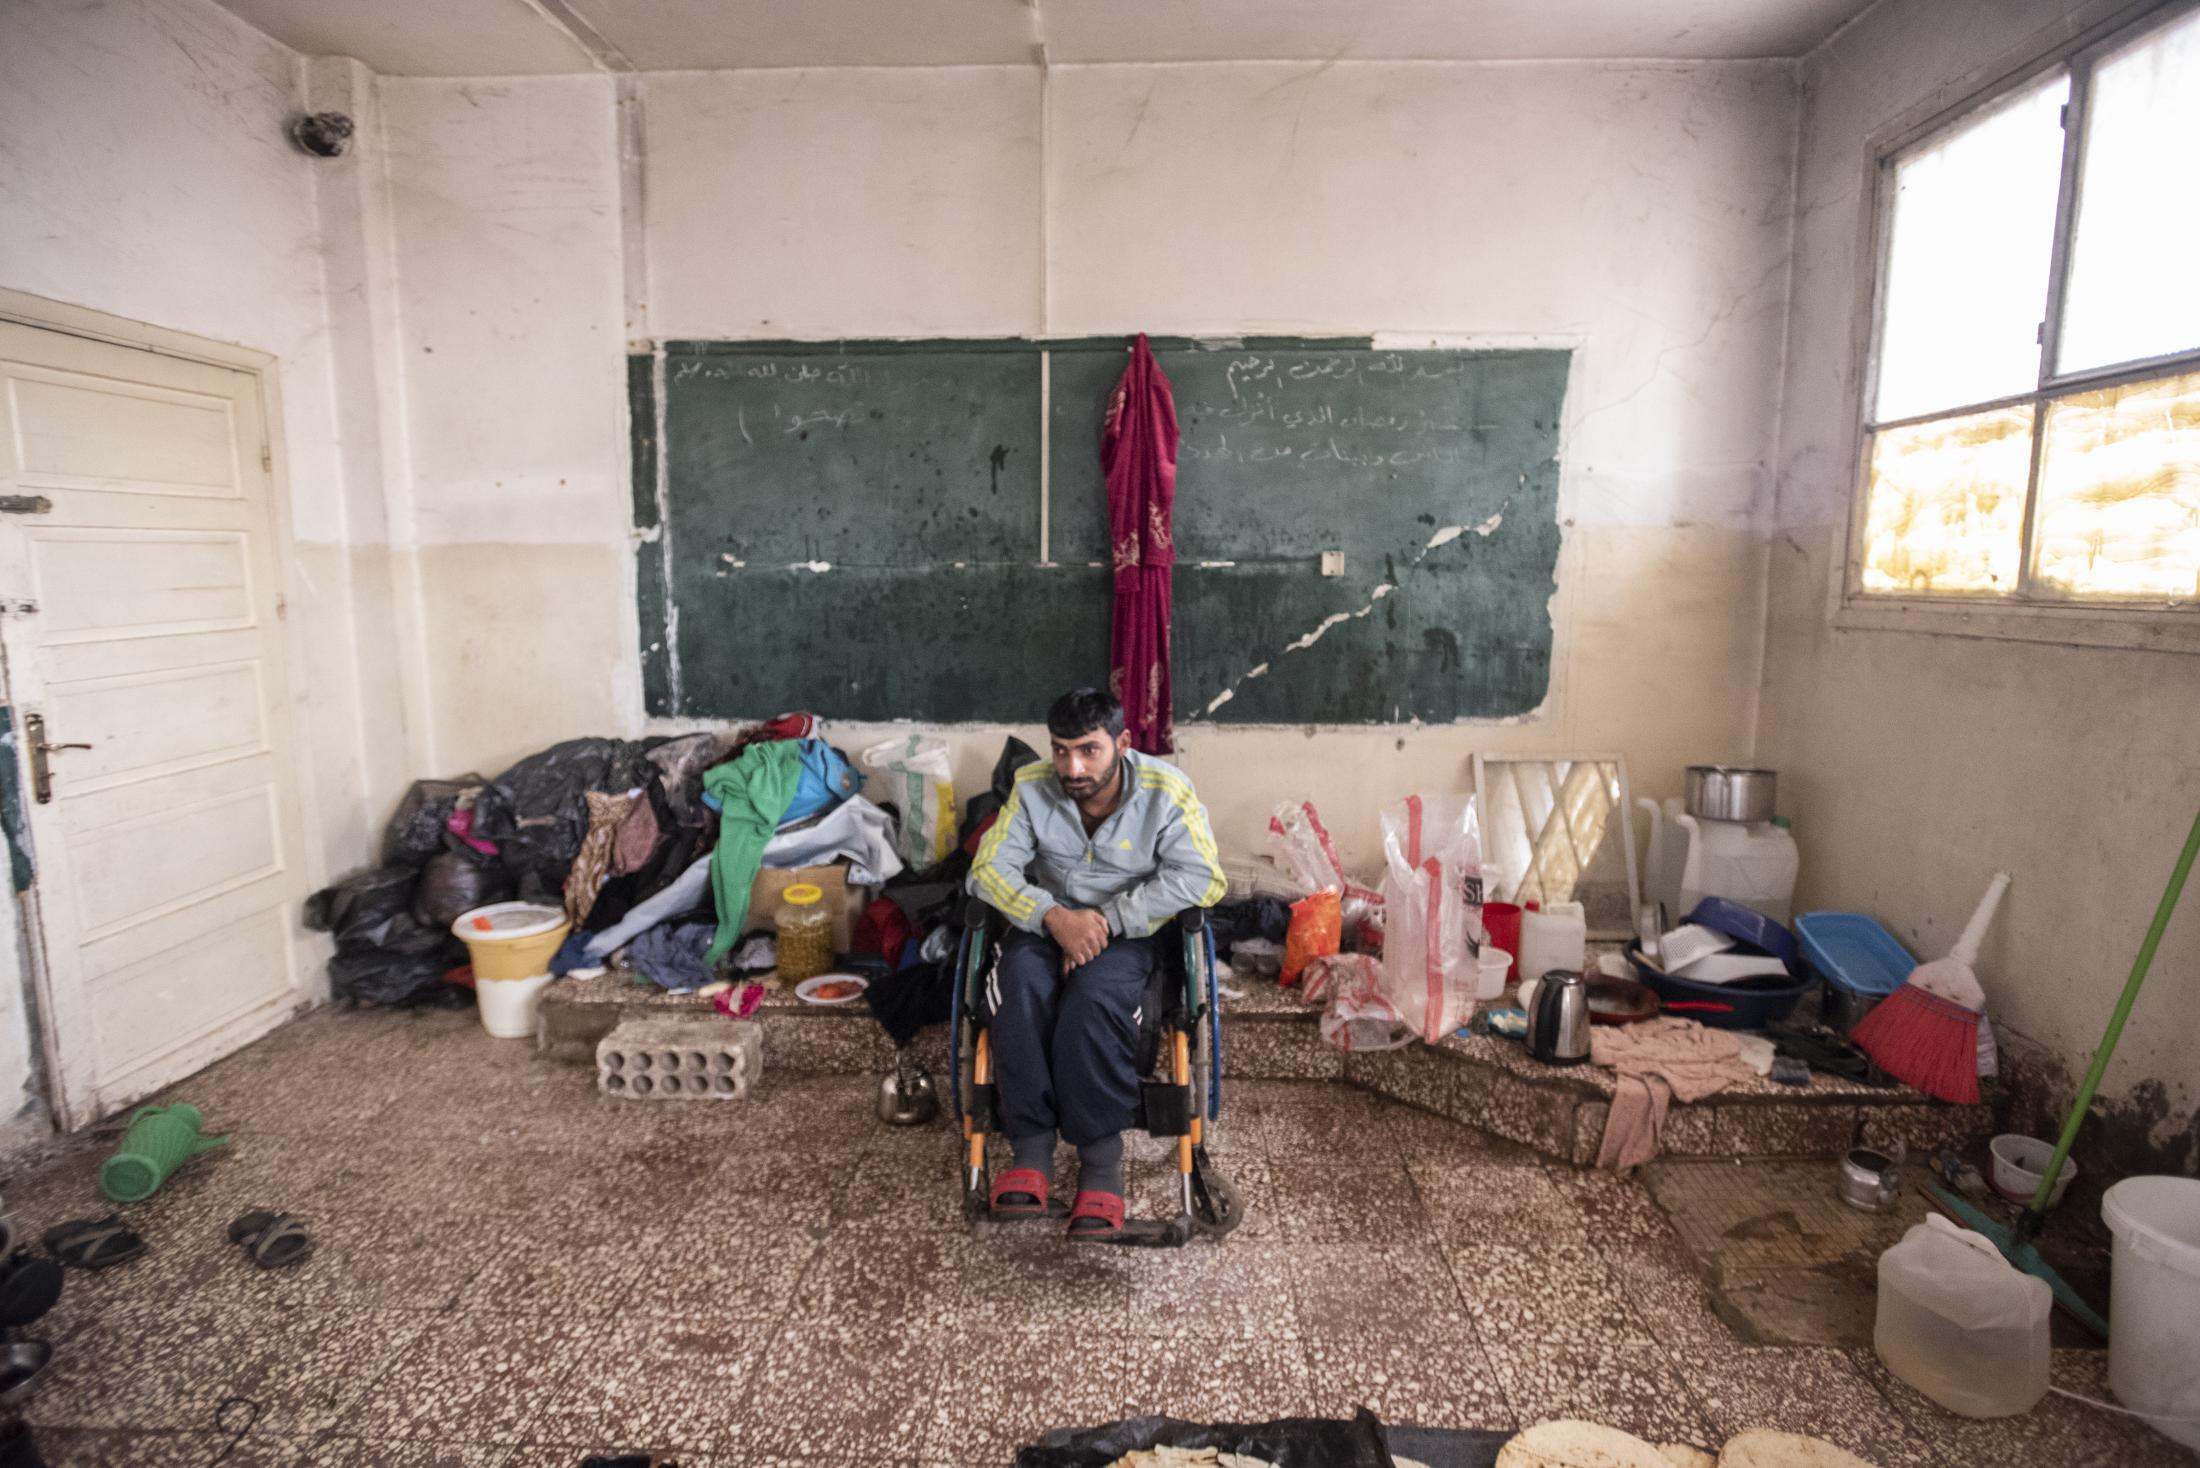 Mustafa Bakir, 25 in his room of an Amuda school who served as a refugee camp. He could only escape thanks to the help of fellow villagers in Serekaniye. He´s on a wheelchair and relies fully on his mother. After the withdrawal of US troops from northern Syria in October 2019, Turkey launched an offensive against the predominantly Kurdish areas in the northeast of the country along Islamist forces. Calls for war crimes investigations into the conduct of Ankara-backed militias are mounting ever since. (Andoni Lubaki / Euskal Fondoa)